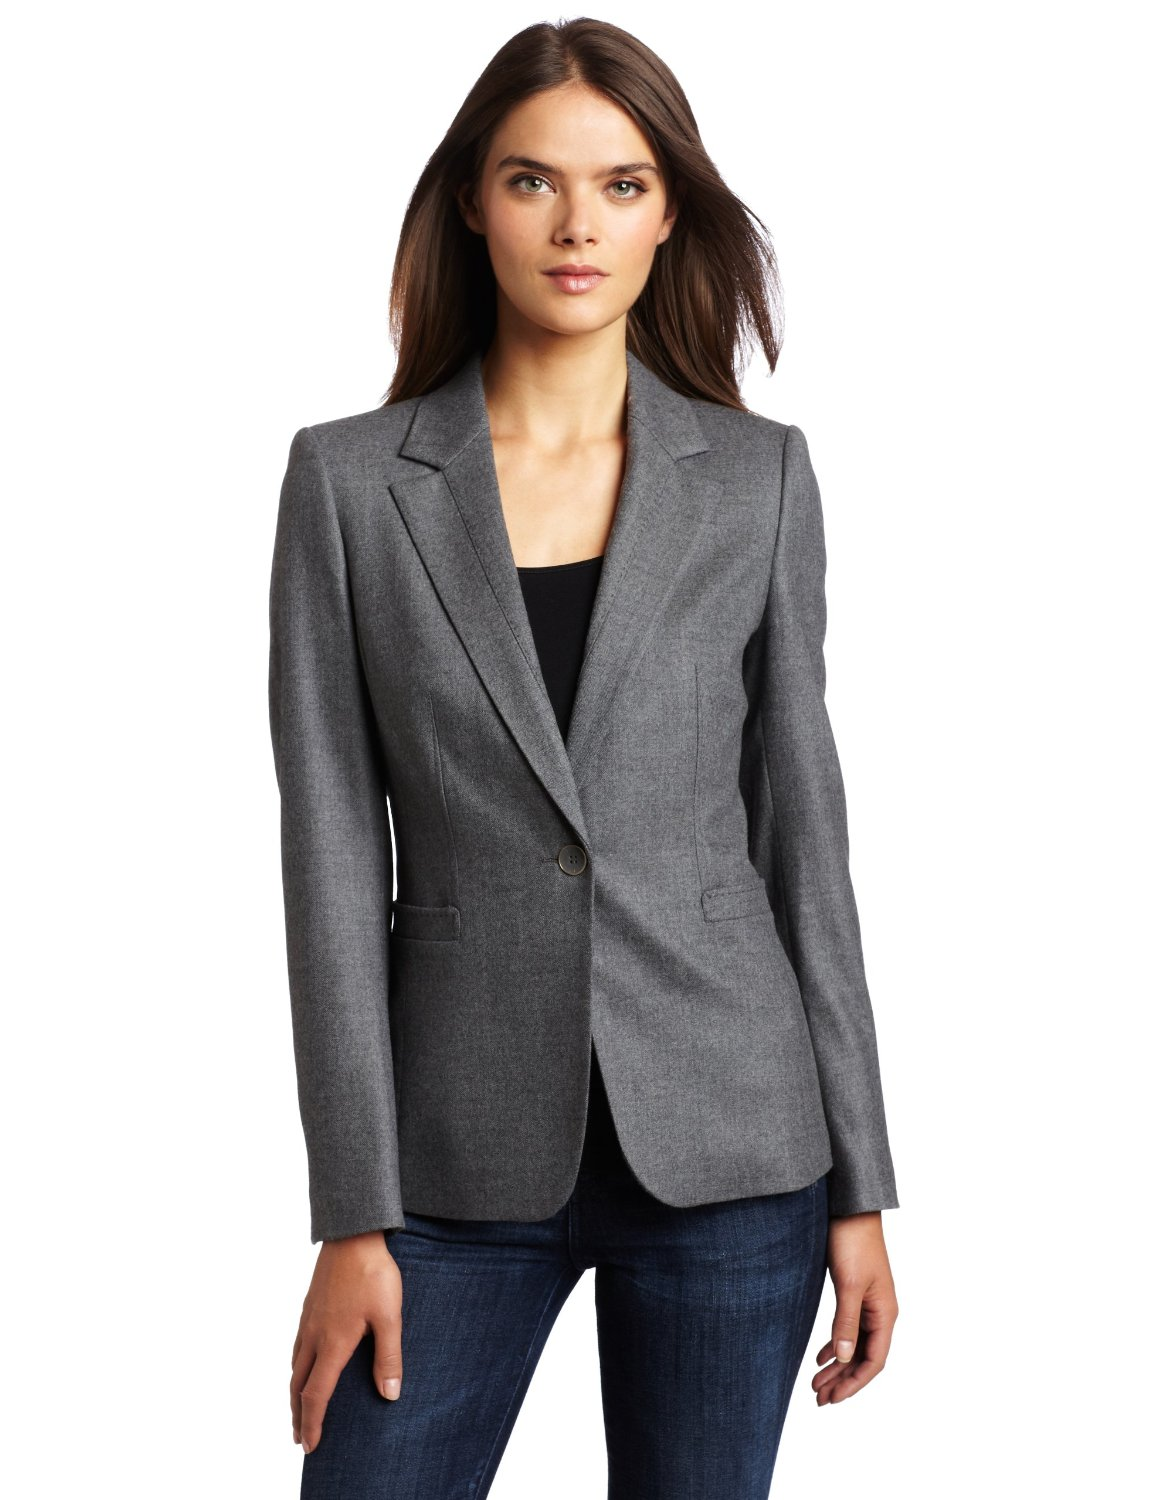 Women's jackets have evolved over the years, and menswear inspired jackets are all the rage. Get the androgynous look with statement double-breasted jackets or .